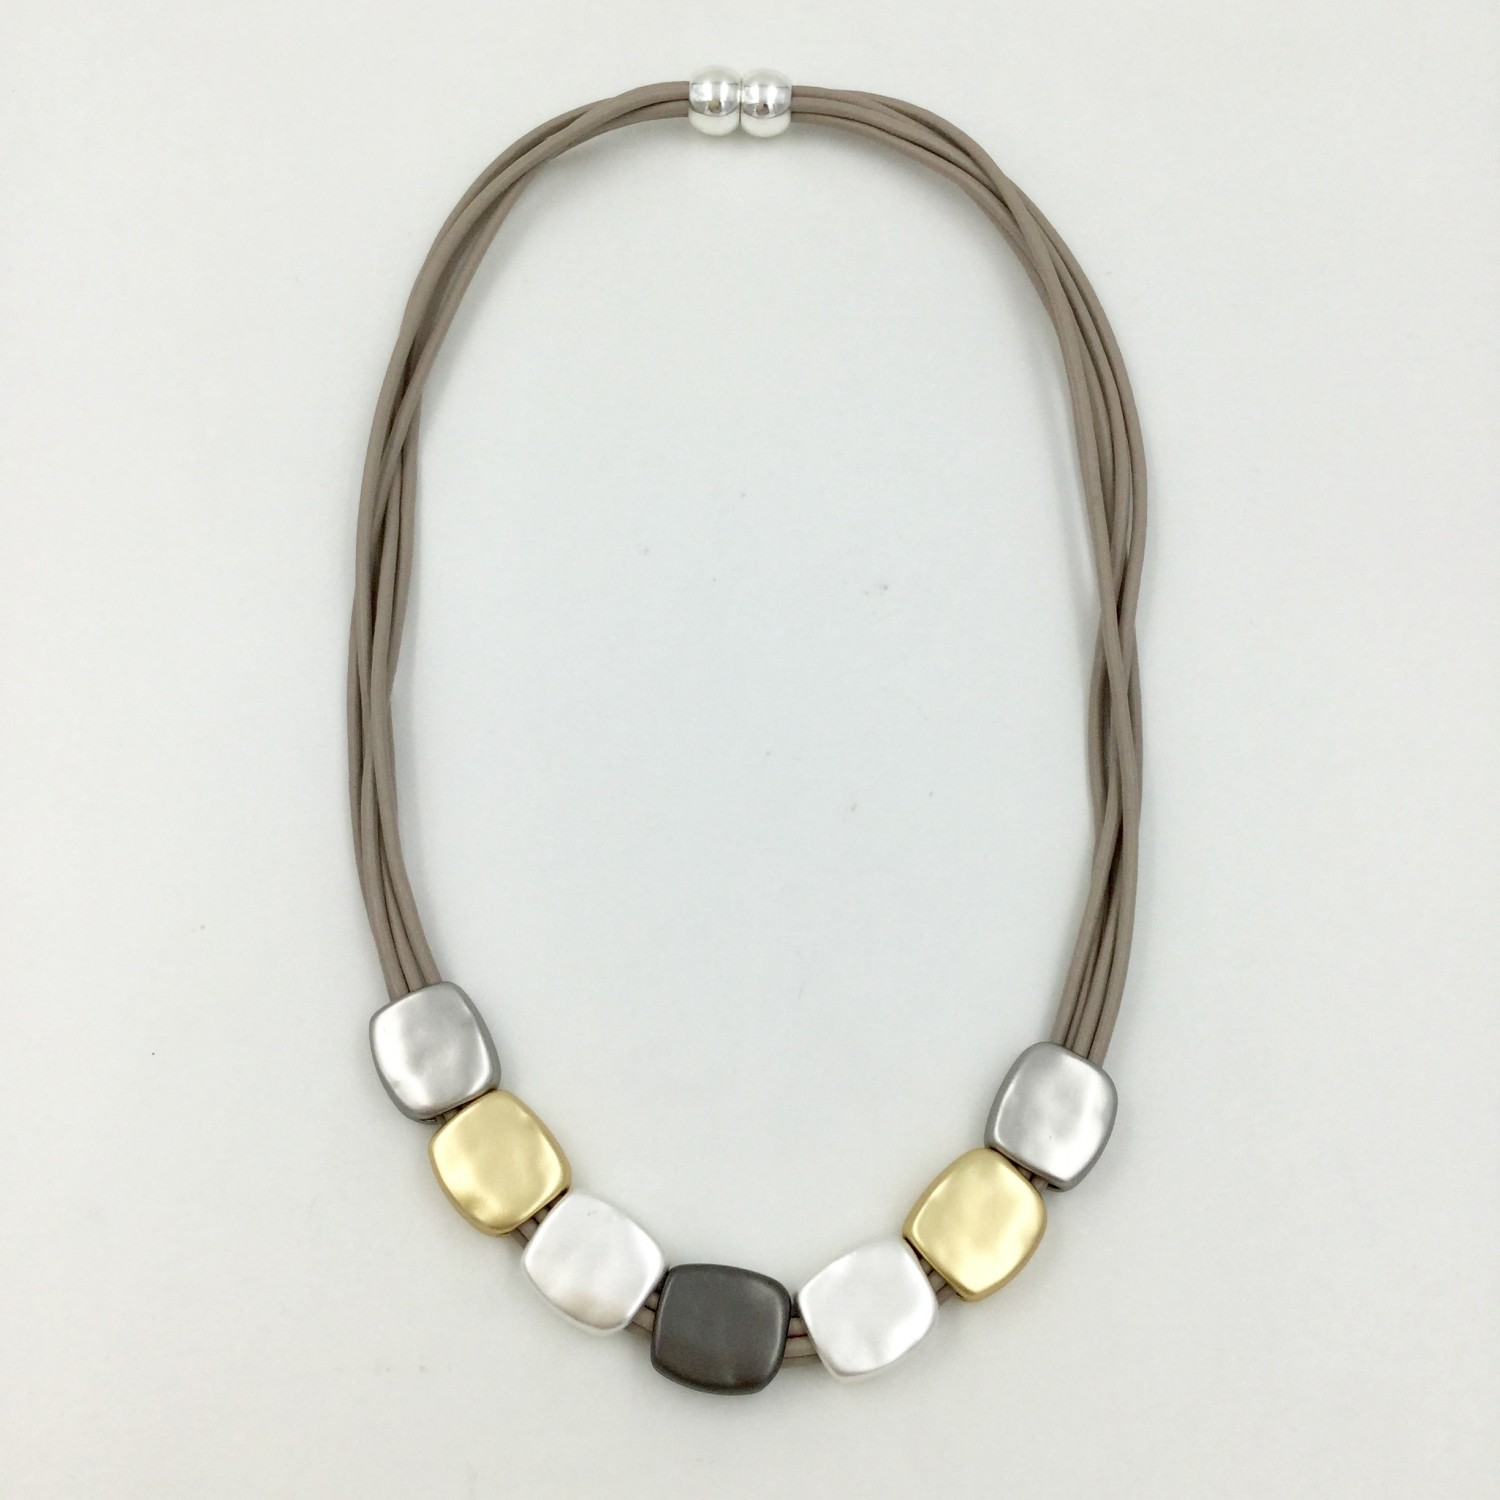 Magnetic Square Pebble Necklace - Taupe/Gold